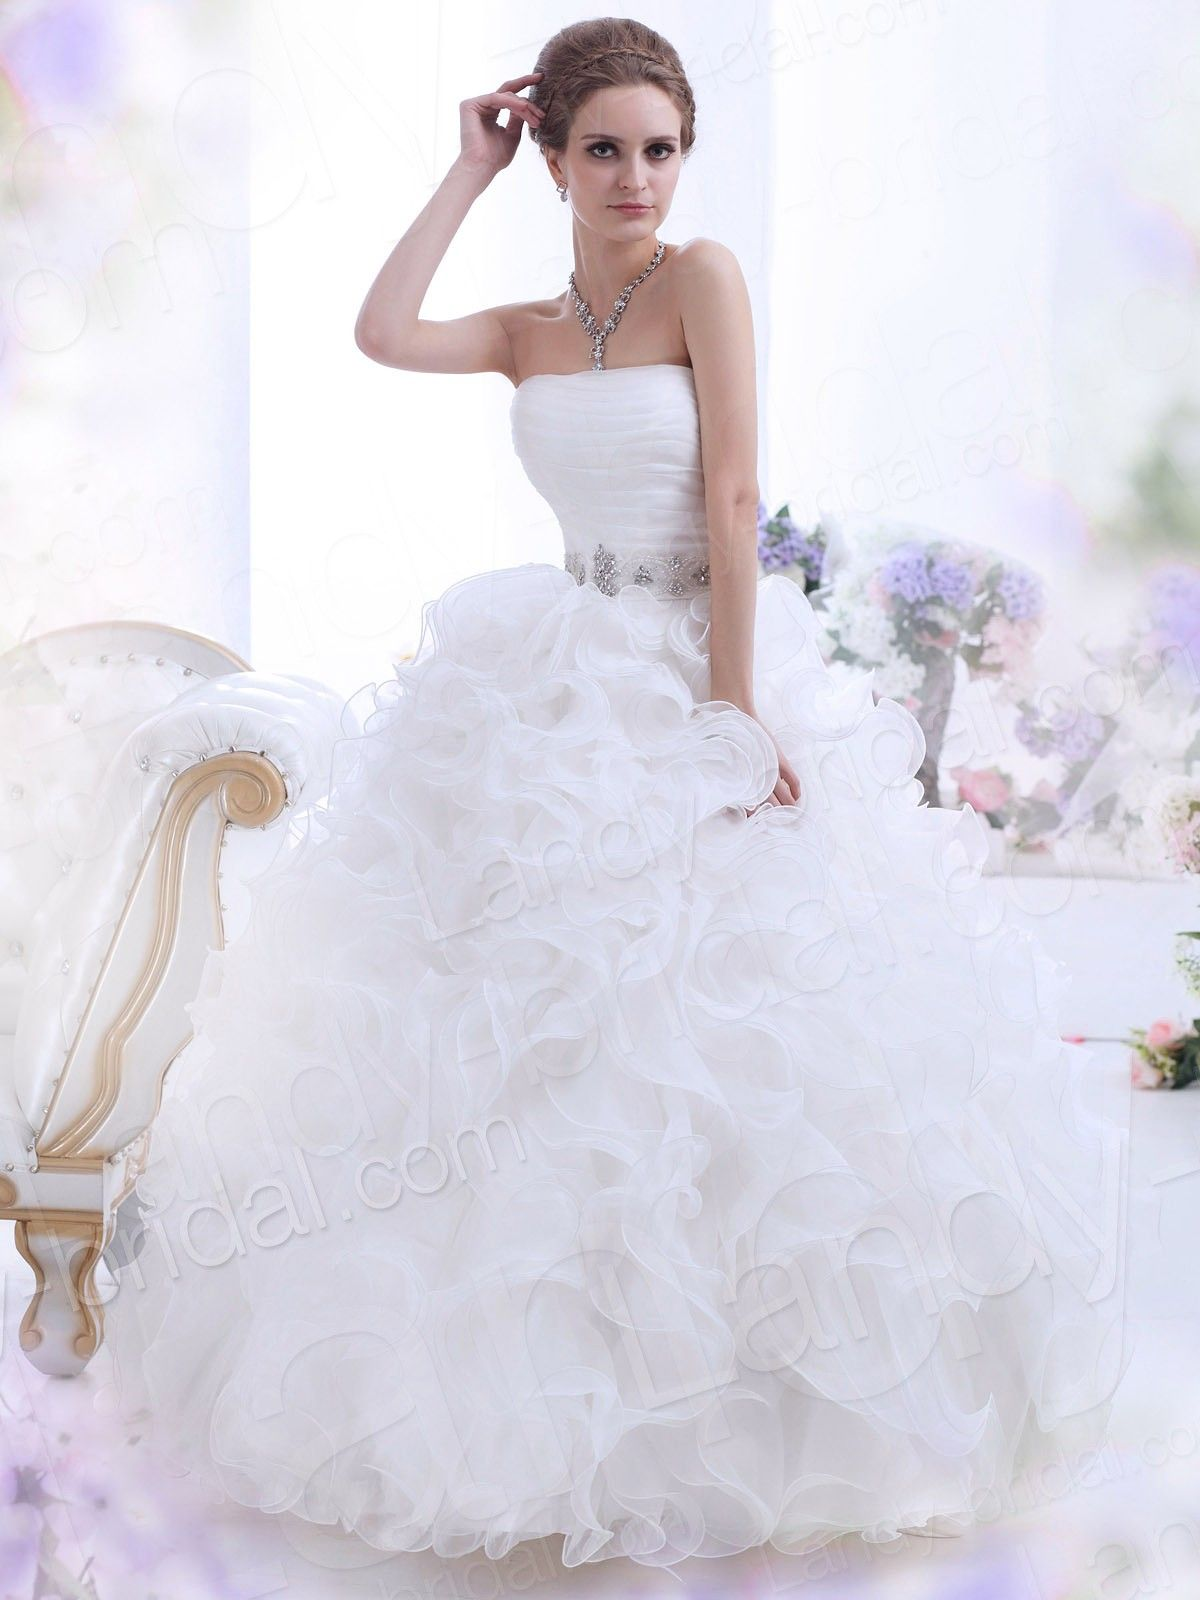 Fluffy wedding dresses  Ball Gown Strapless Floor Length Organza Ivory Wedding Dress B